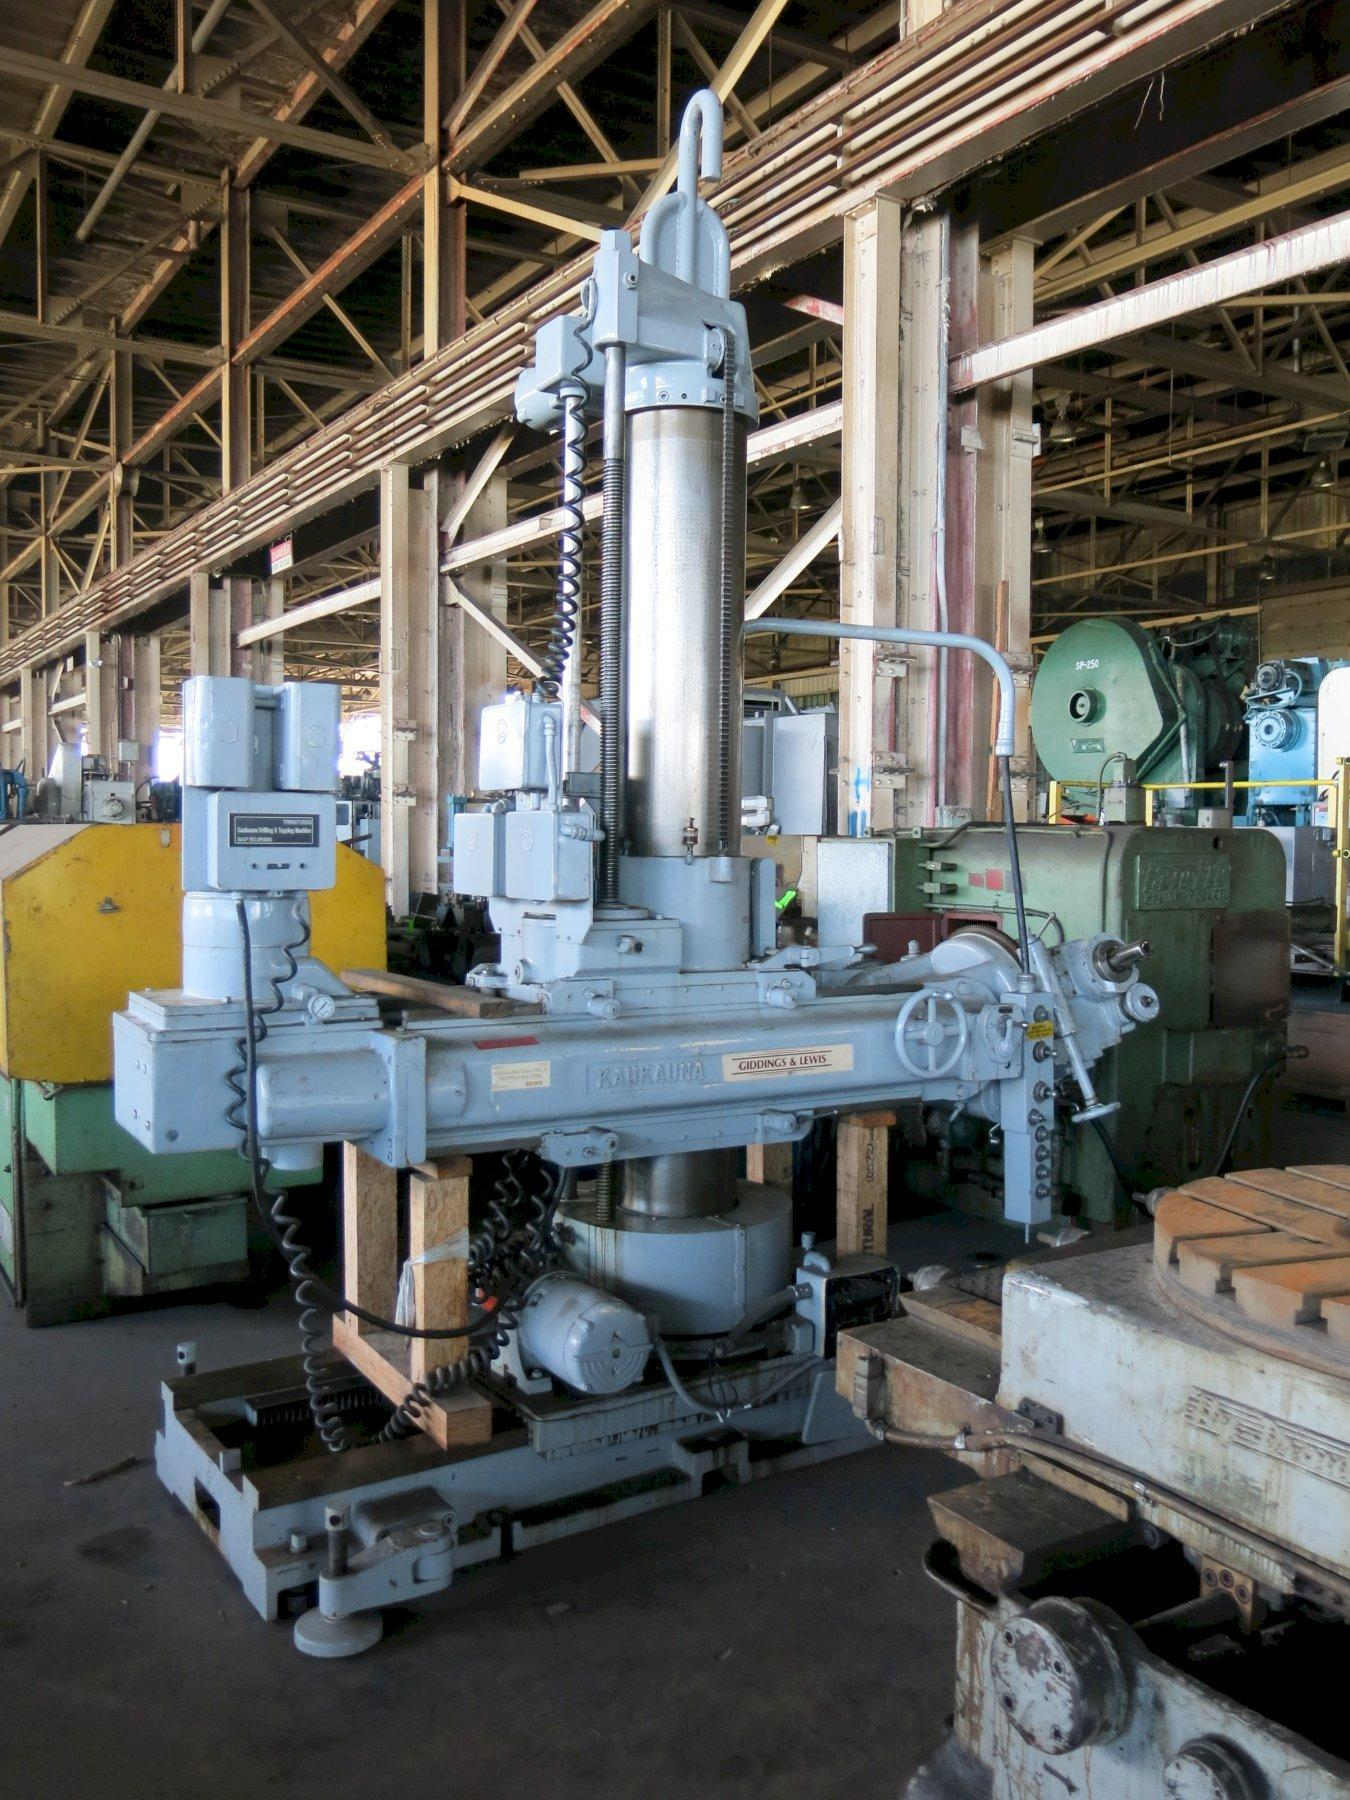 Giddings & Lewis Kakauna Portable Radial Drill